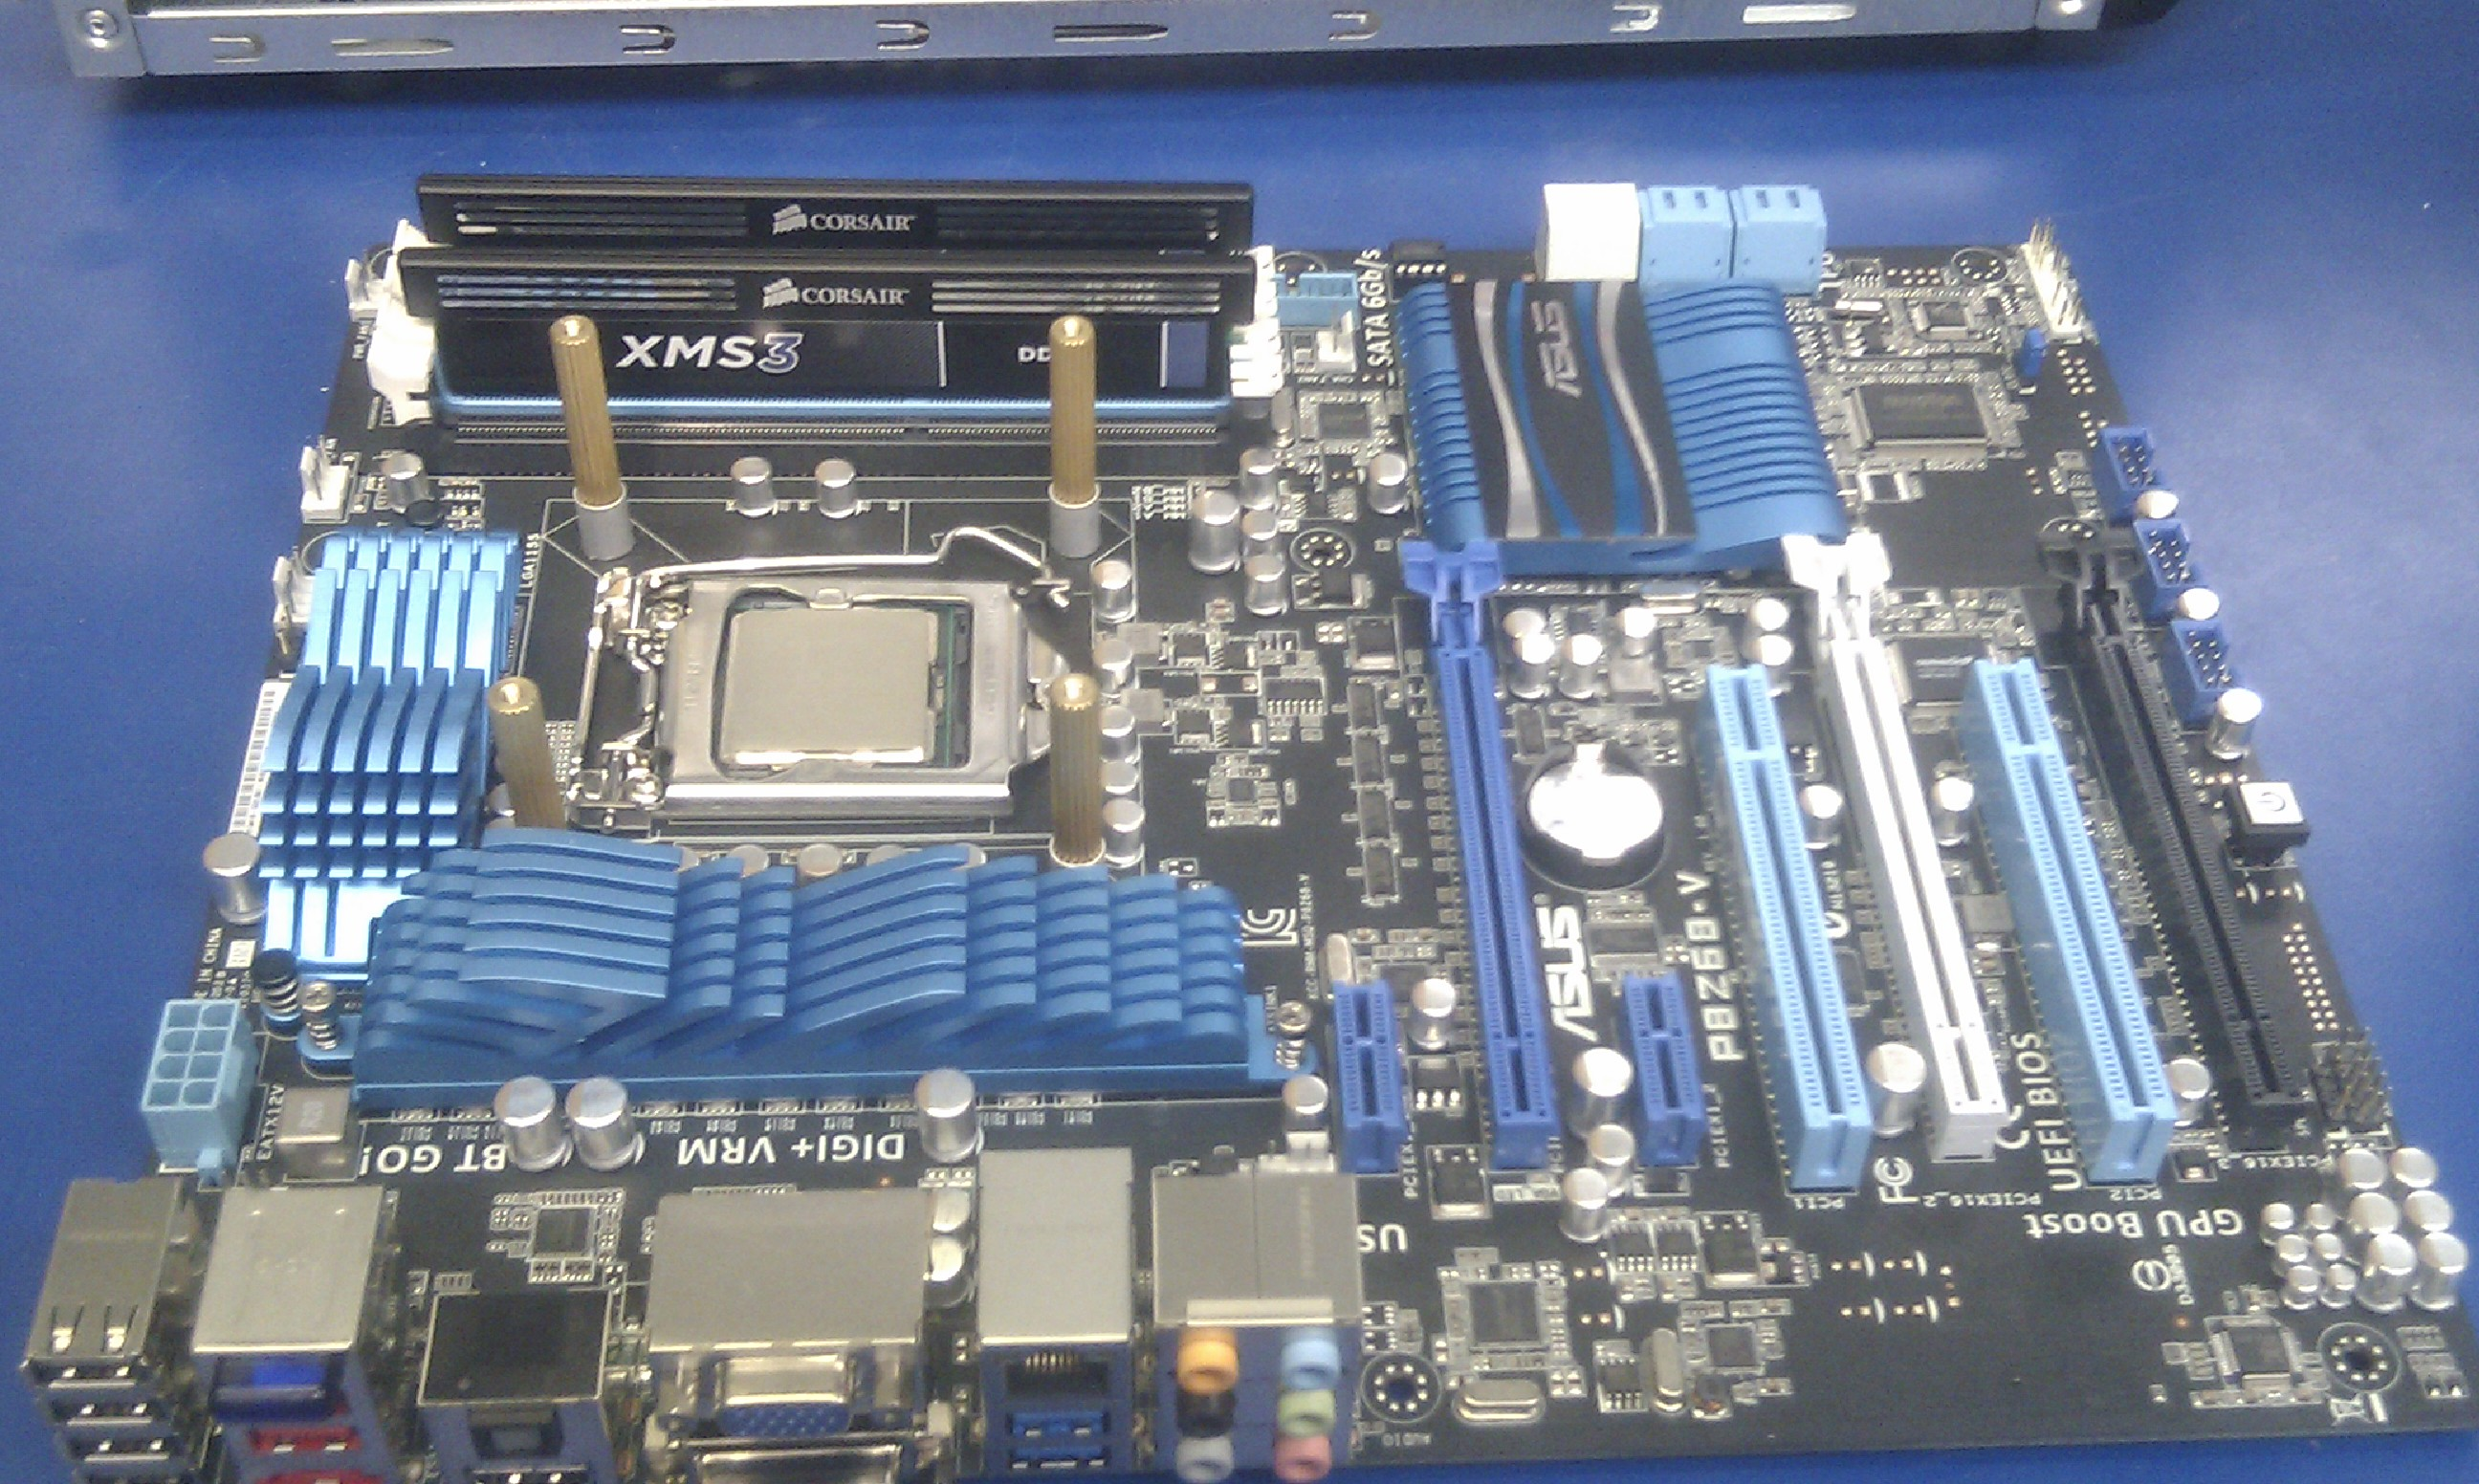 The Asus board set up with the heatsink mounts.